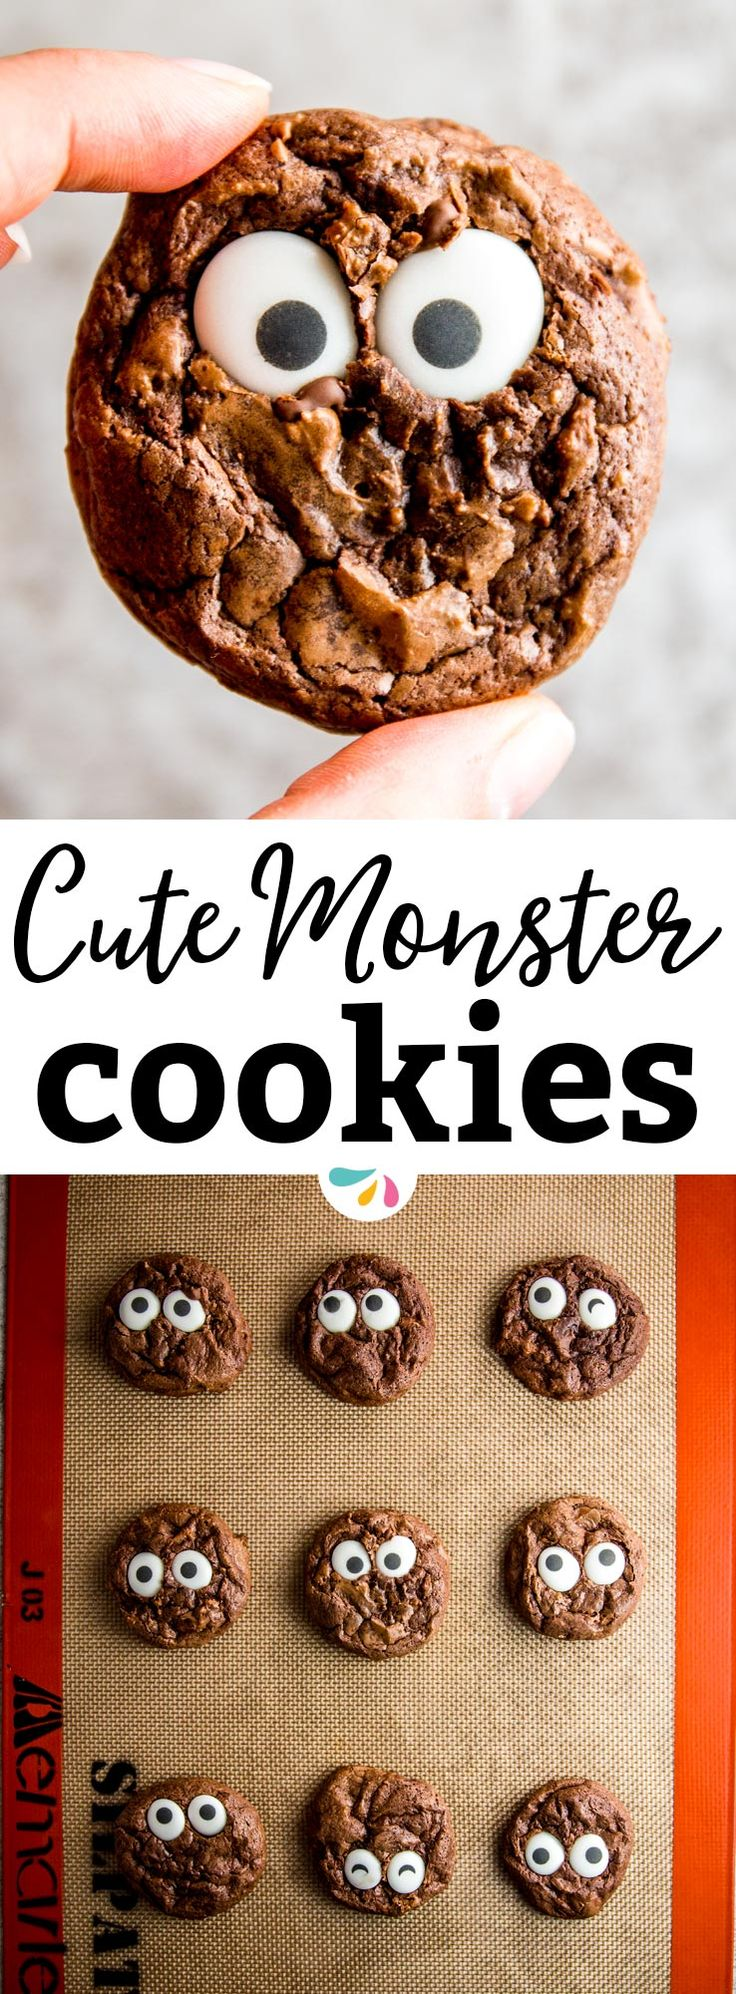 Do you want to make a Halloween treat you'll actually have fun making with the kids and that will look exactly like in the picture? Try these Cute Monster Eye Cookies! They're a great easy dessert for a party and if you don't feel like baking your own cookies you won't even need a recipe. They're creepy-cute, so they're the perfect food idea for a children's party. | #recipes #halloween #food #crafts #party #fall #trickortreat